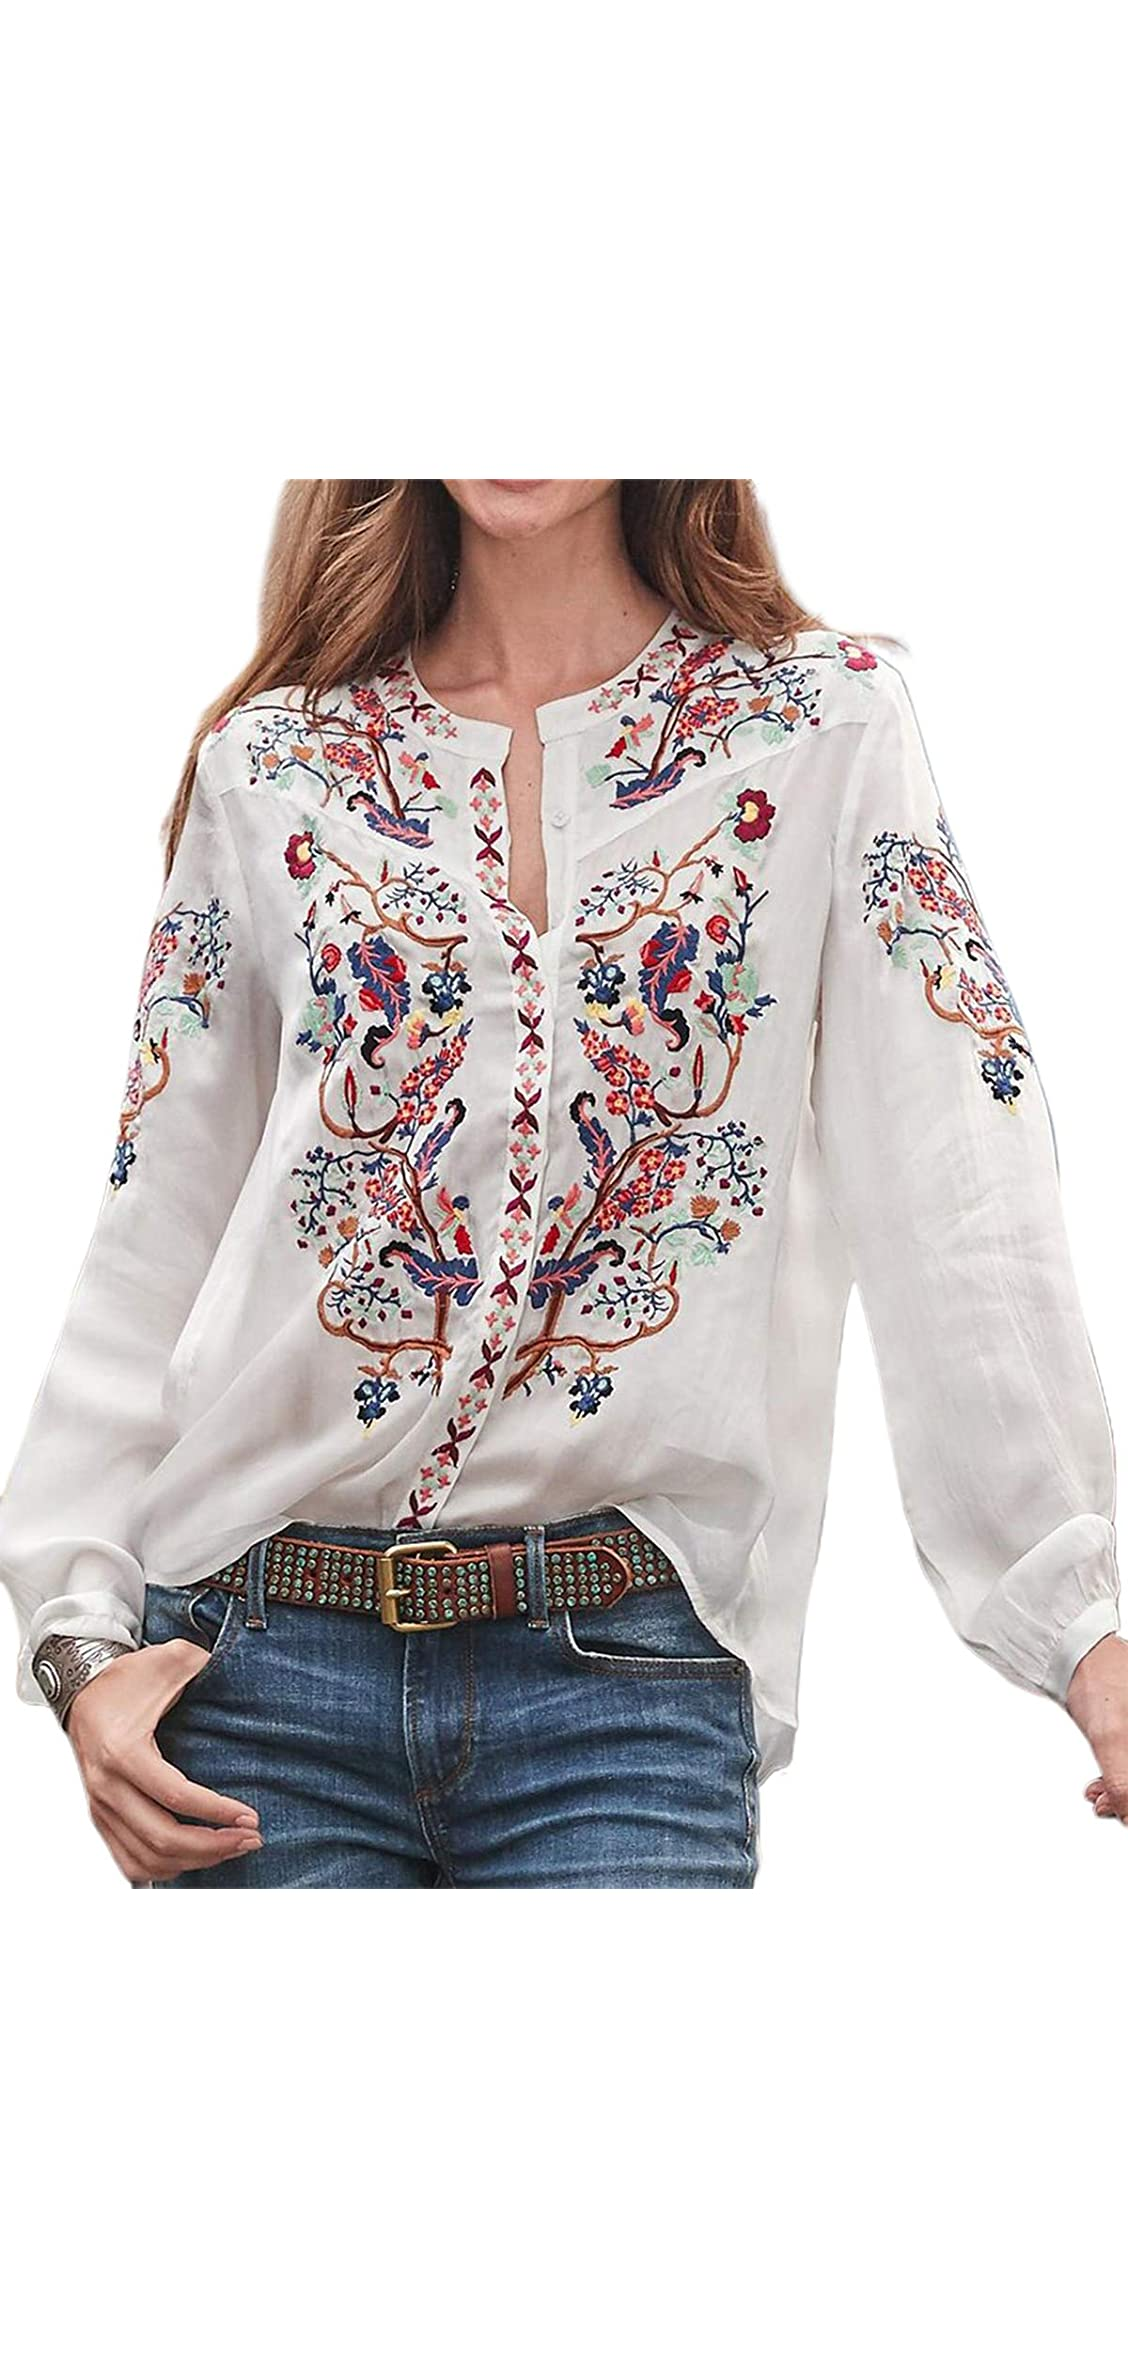 Women Embroidered Tops Shirts Boho Floral Print Long Tunic